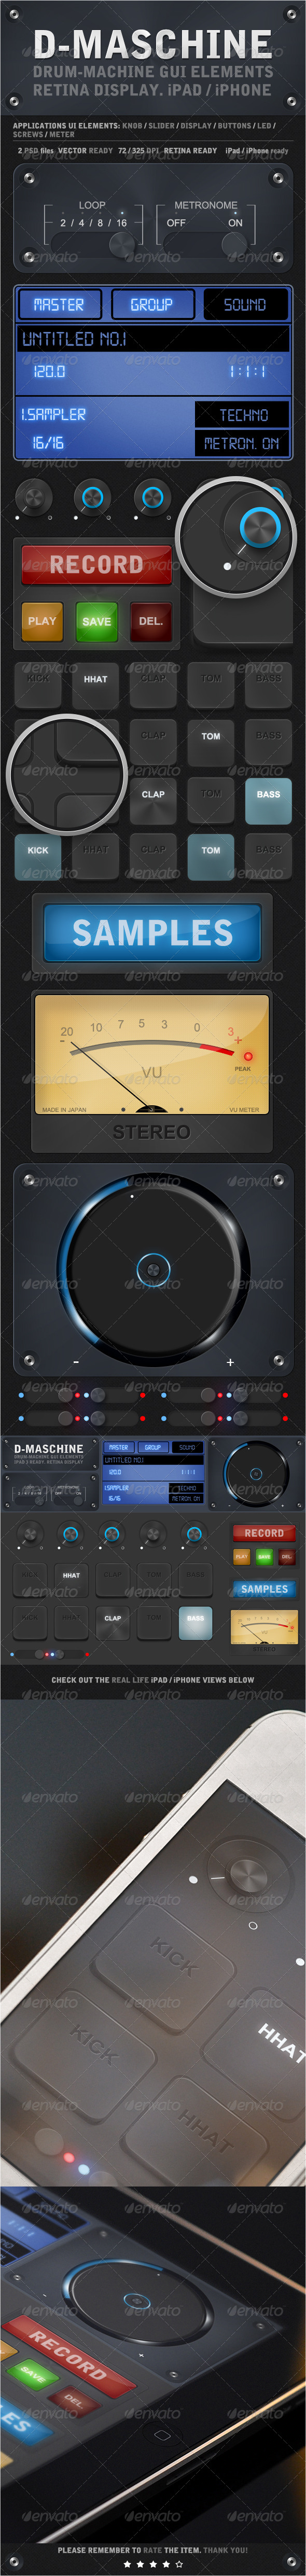 GraphicRiver D-Maschine iPad iPhone UI Elements V1 4113978